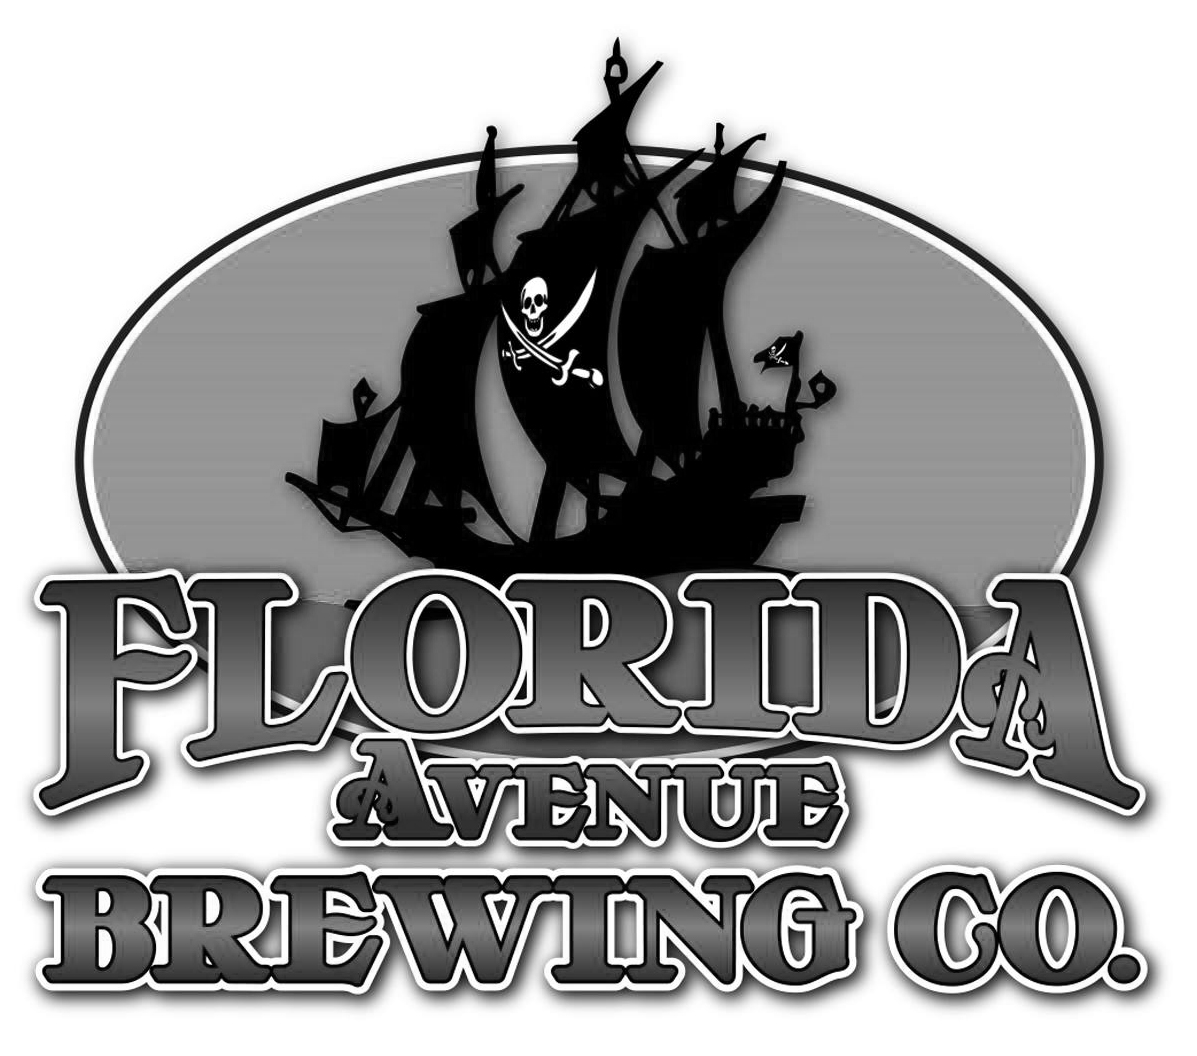 Hosted By Florida Ave. Brewery